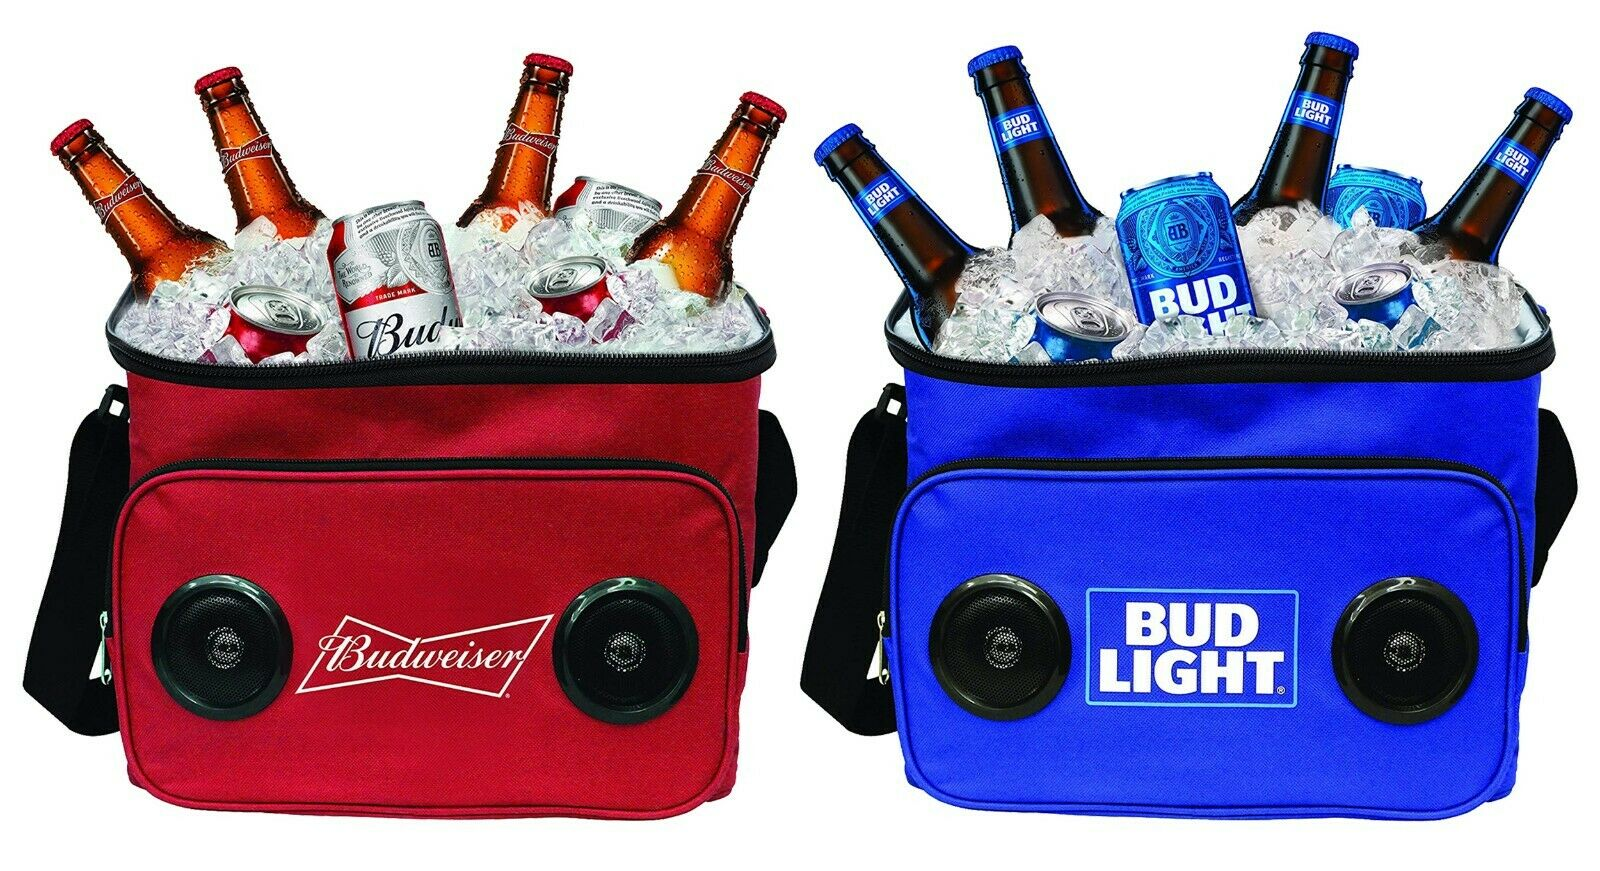 Bud Light Budweiser Soft Beer Cooler with Built-in Wireless